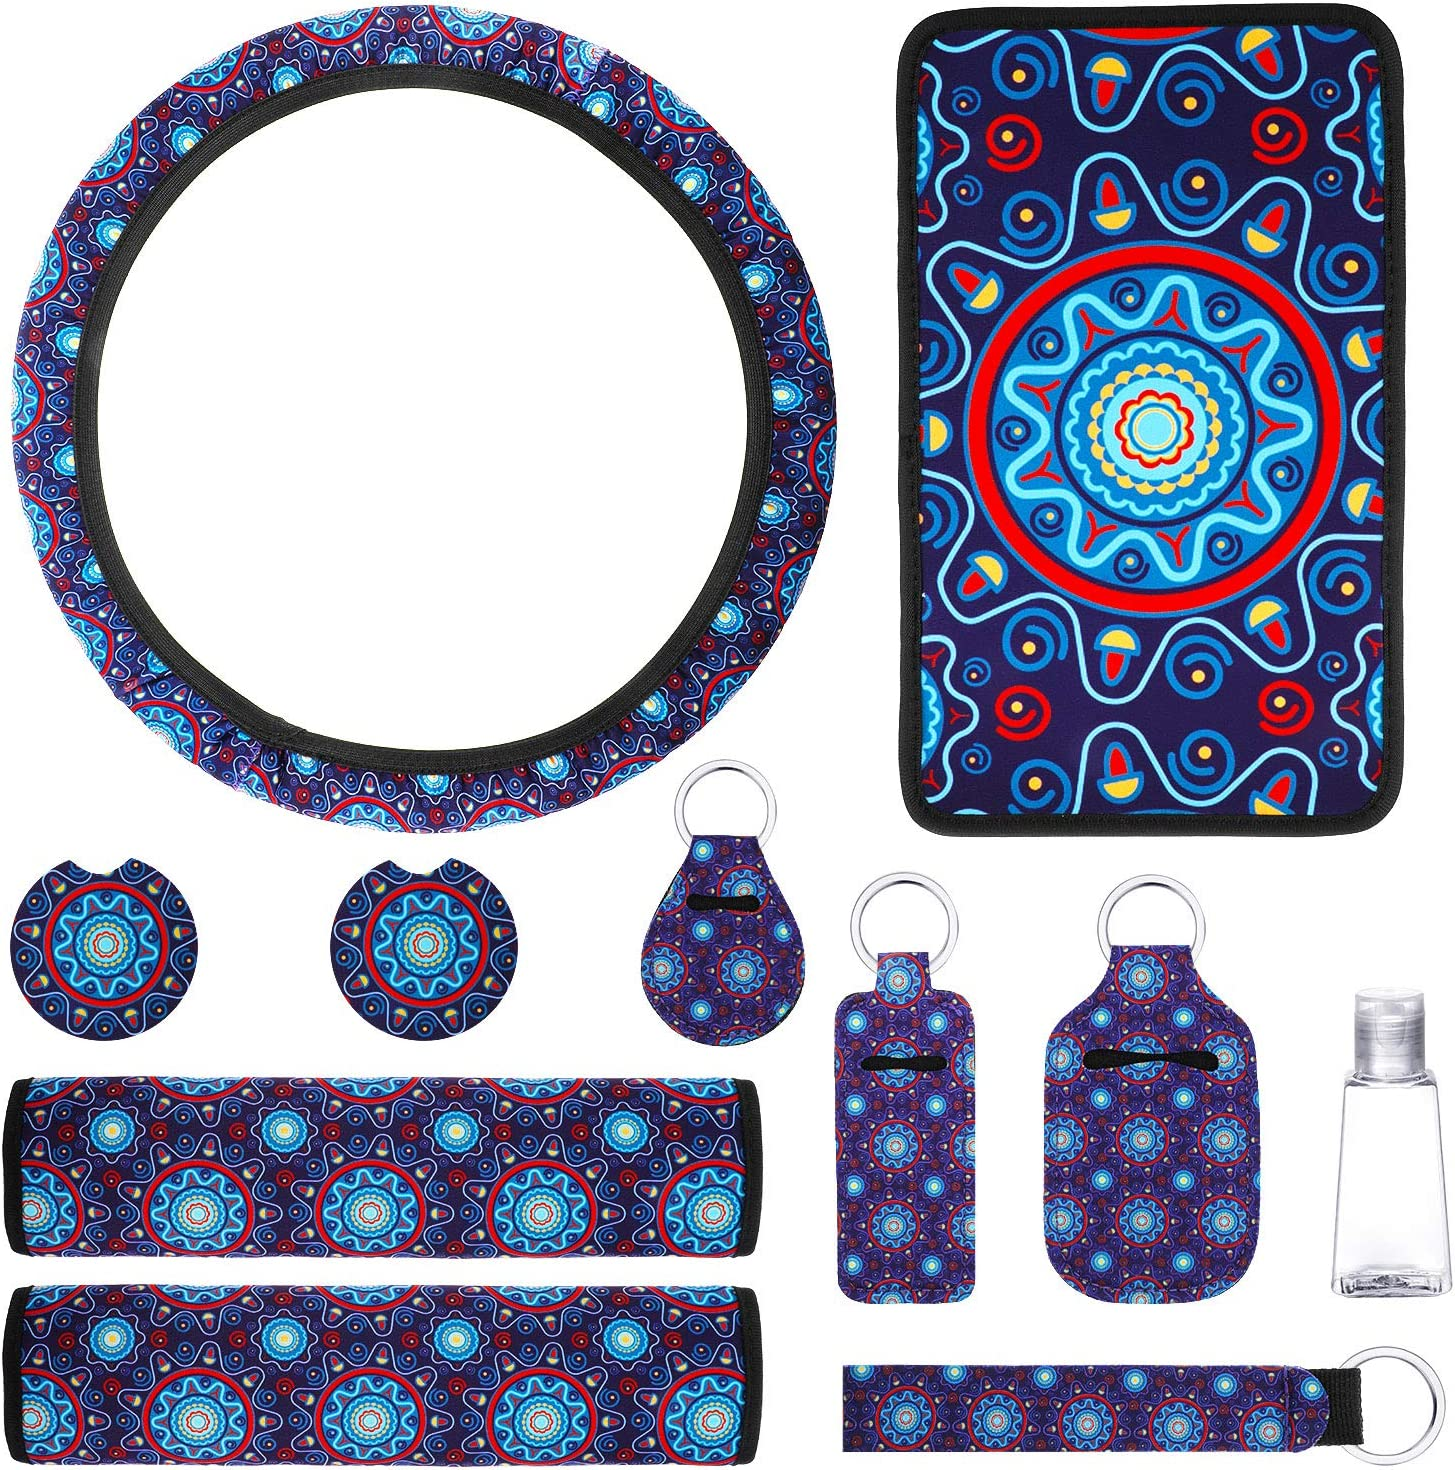 11 Pieces Universal Mandala Style Car Accessories Include Steering Wheel Cover Center Console Armrest Pad Seat Belt Shoulder Pad Cup Holder Coaster Key Rings Clear Bottle and Lipstick Keychain Holder